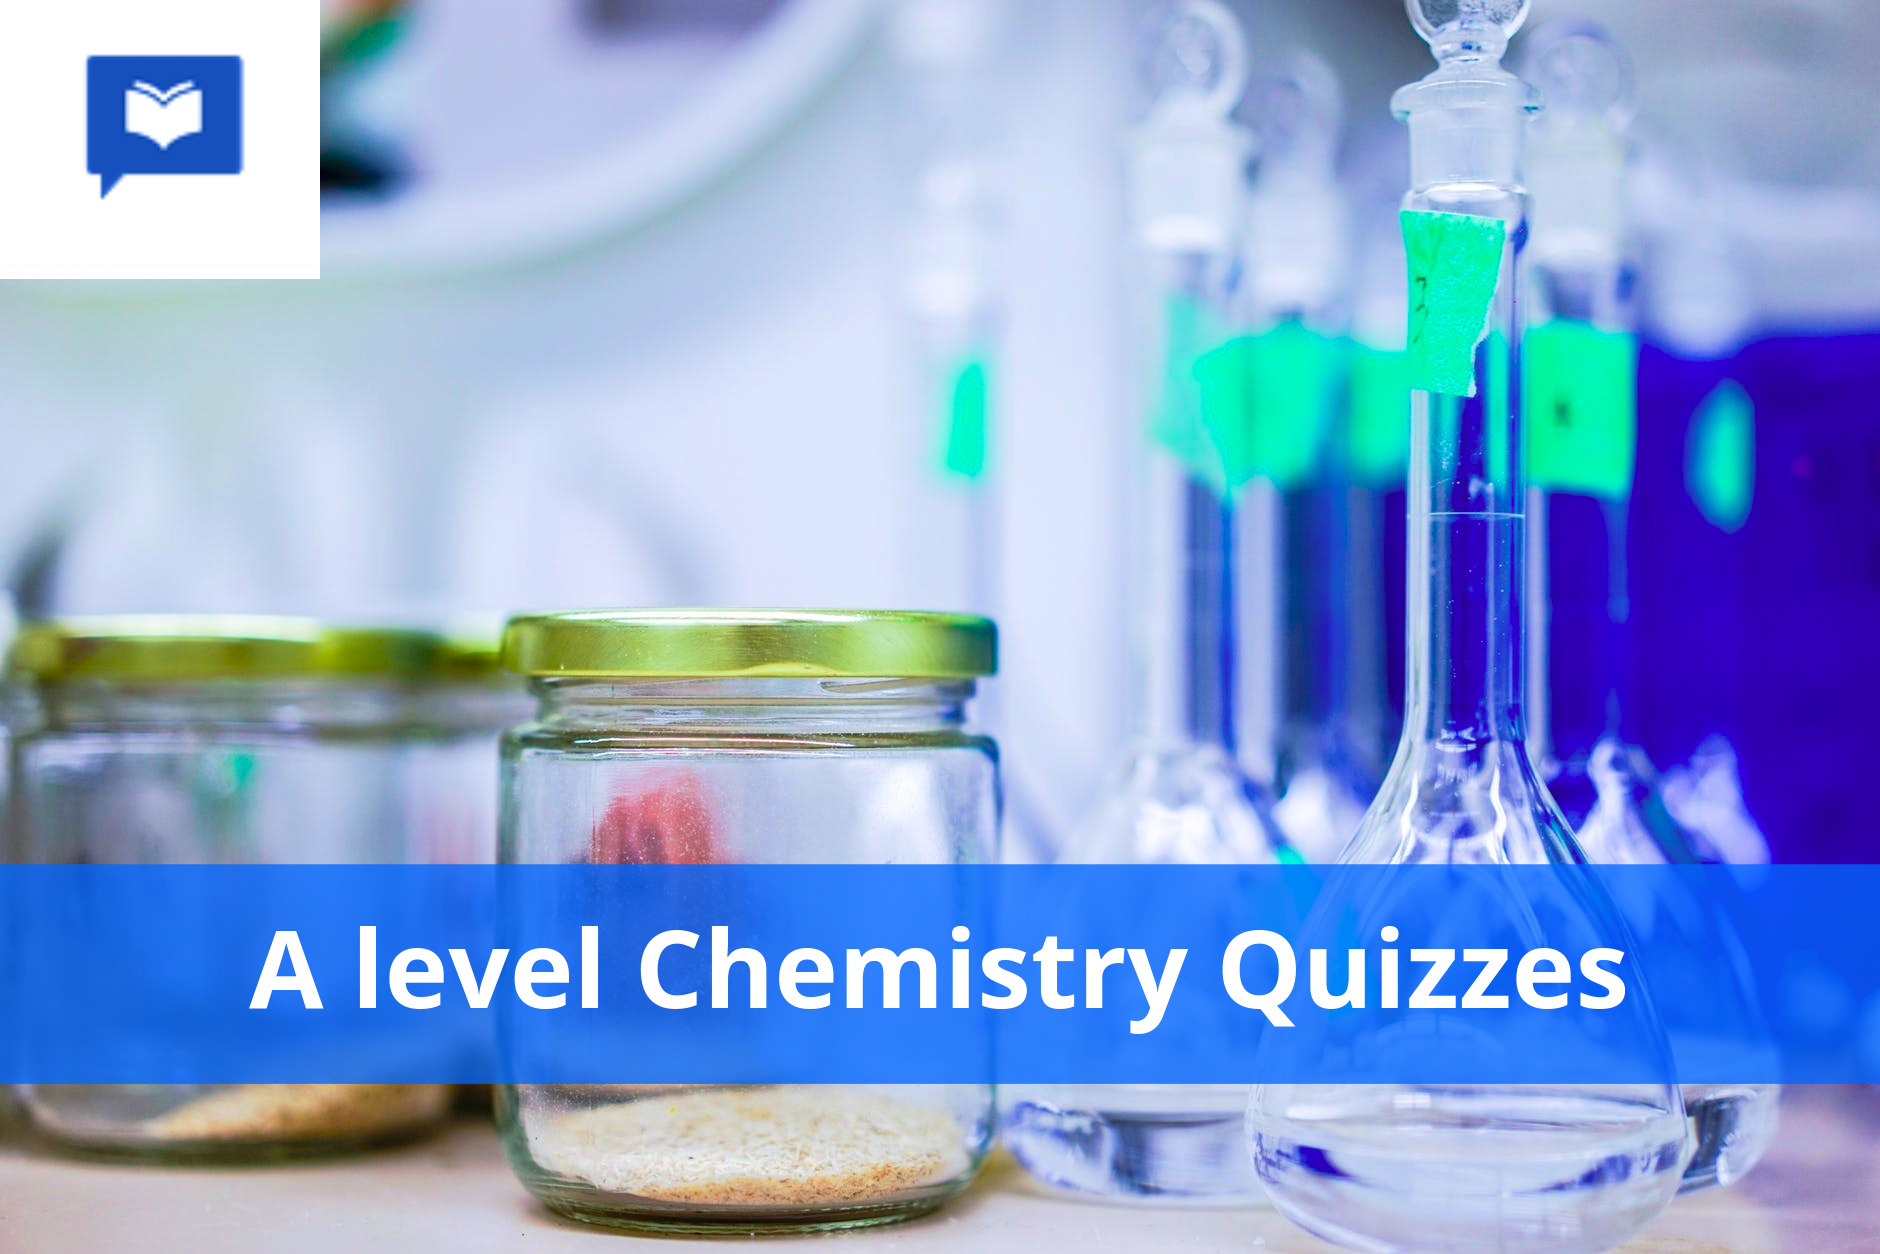 A level Chemistry Quizzes